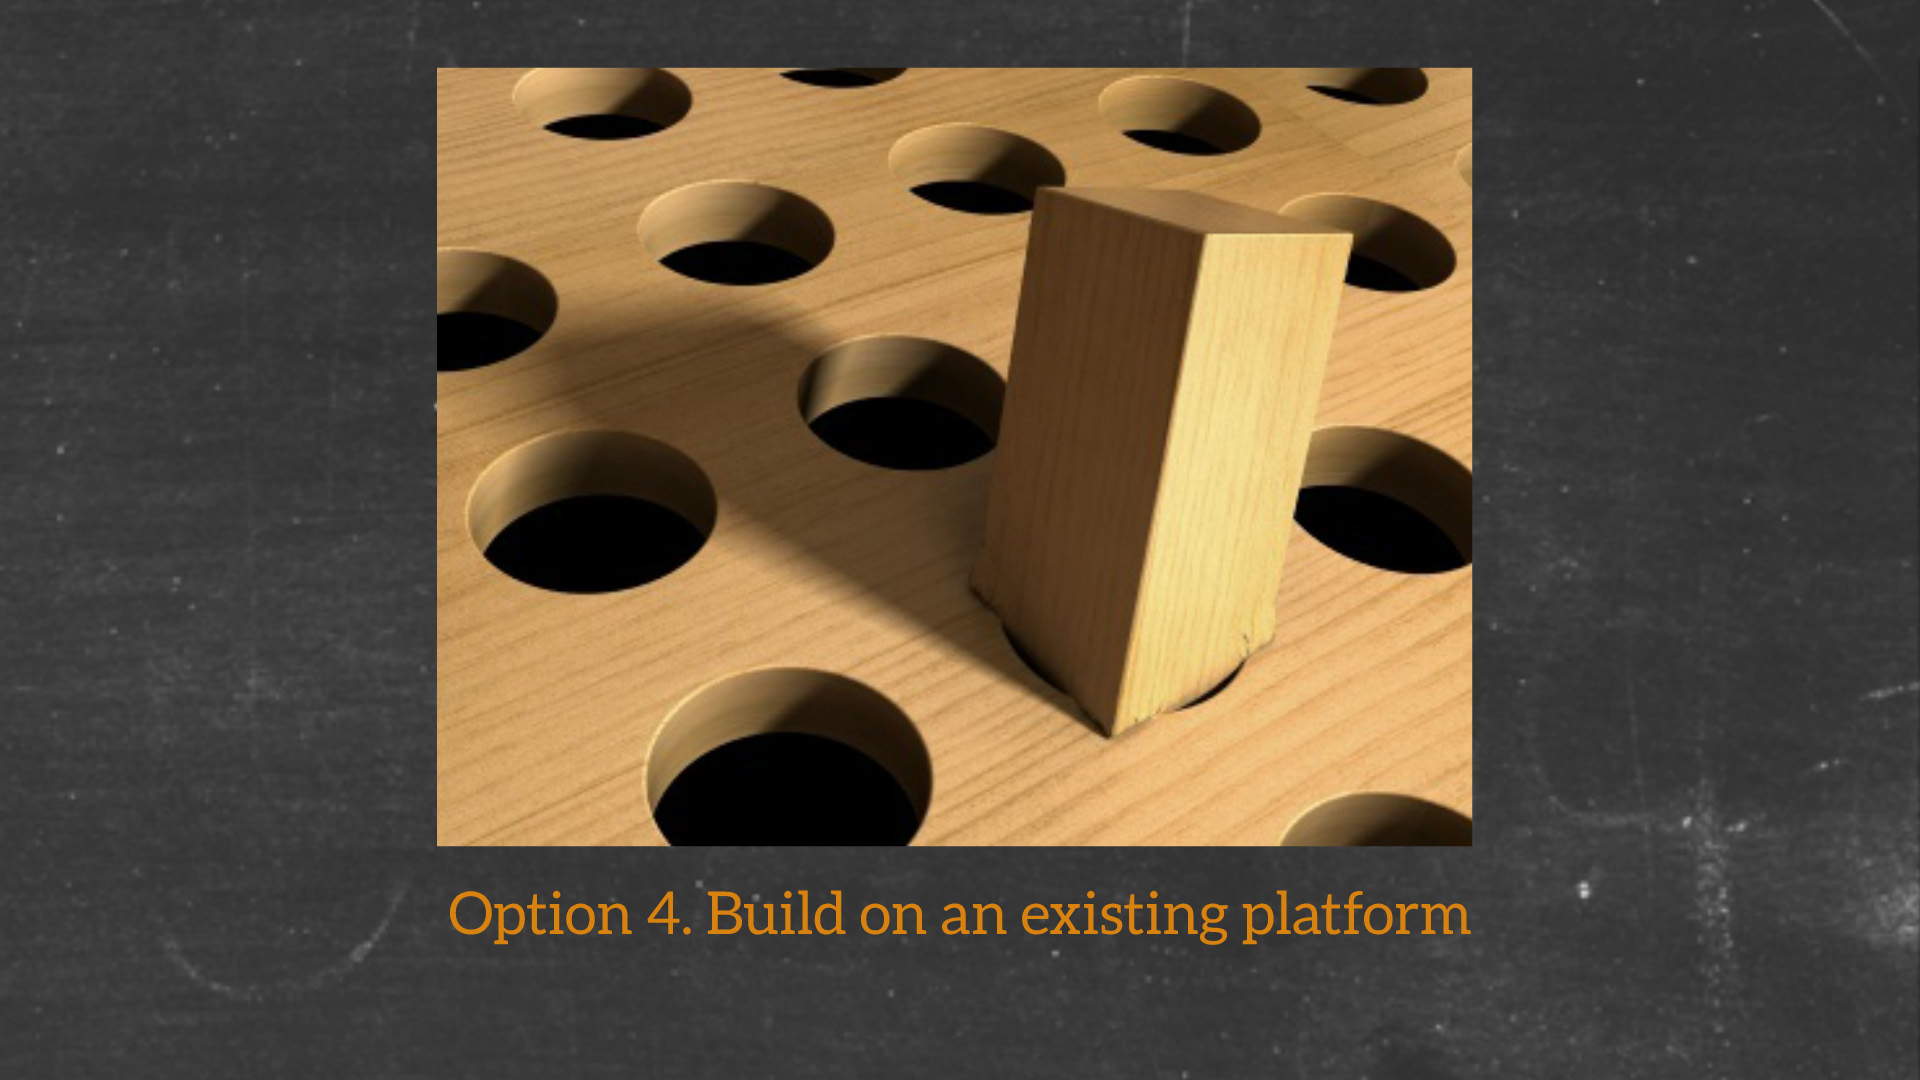 Option 4. Build on an existing platform